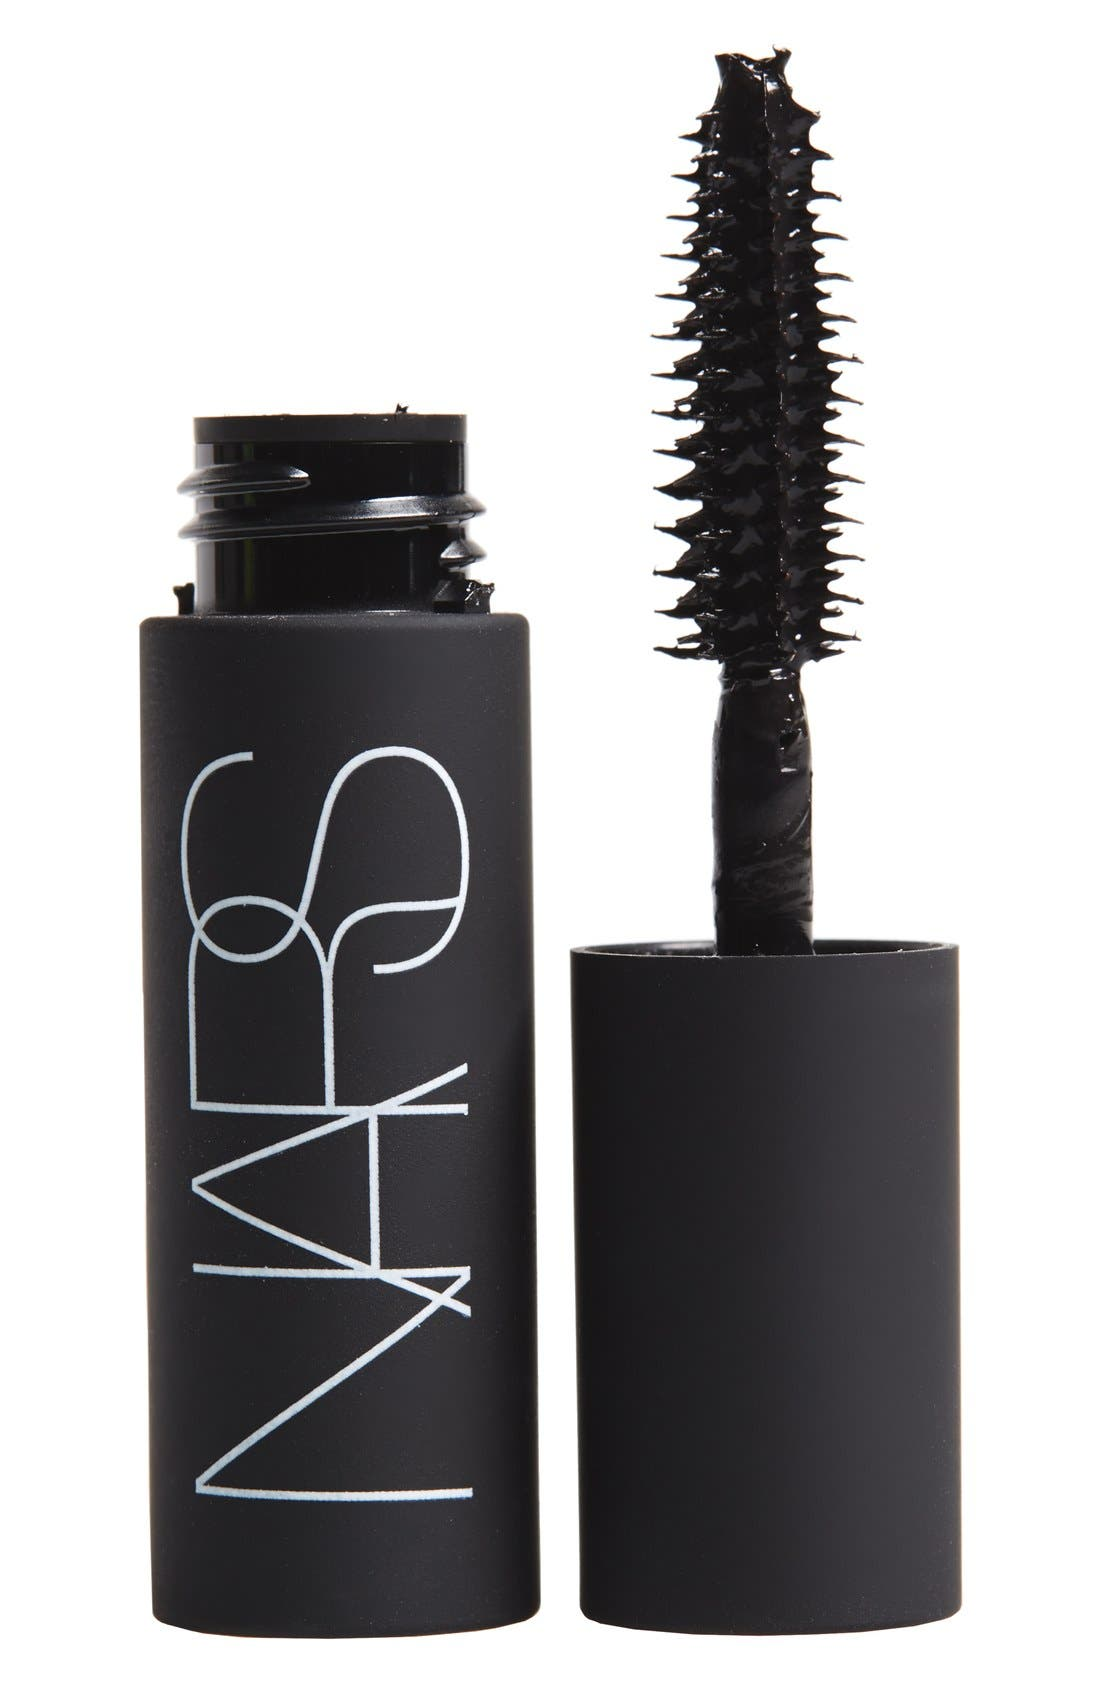 NARS Gift with Purchase | Nordstrom